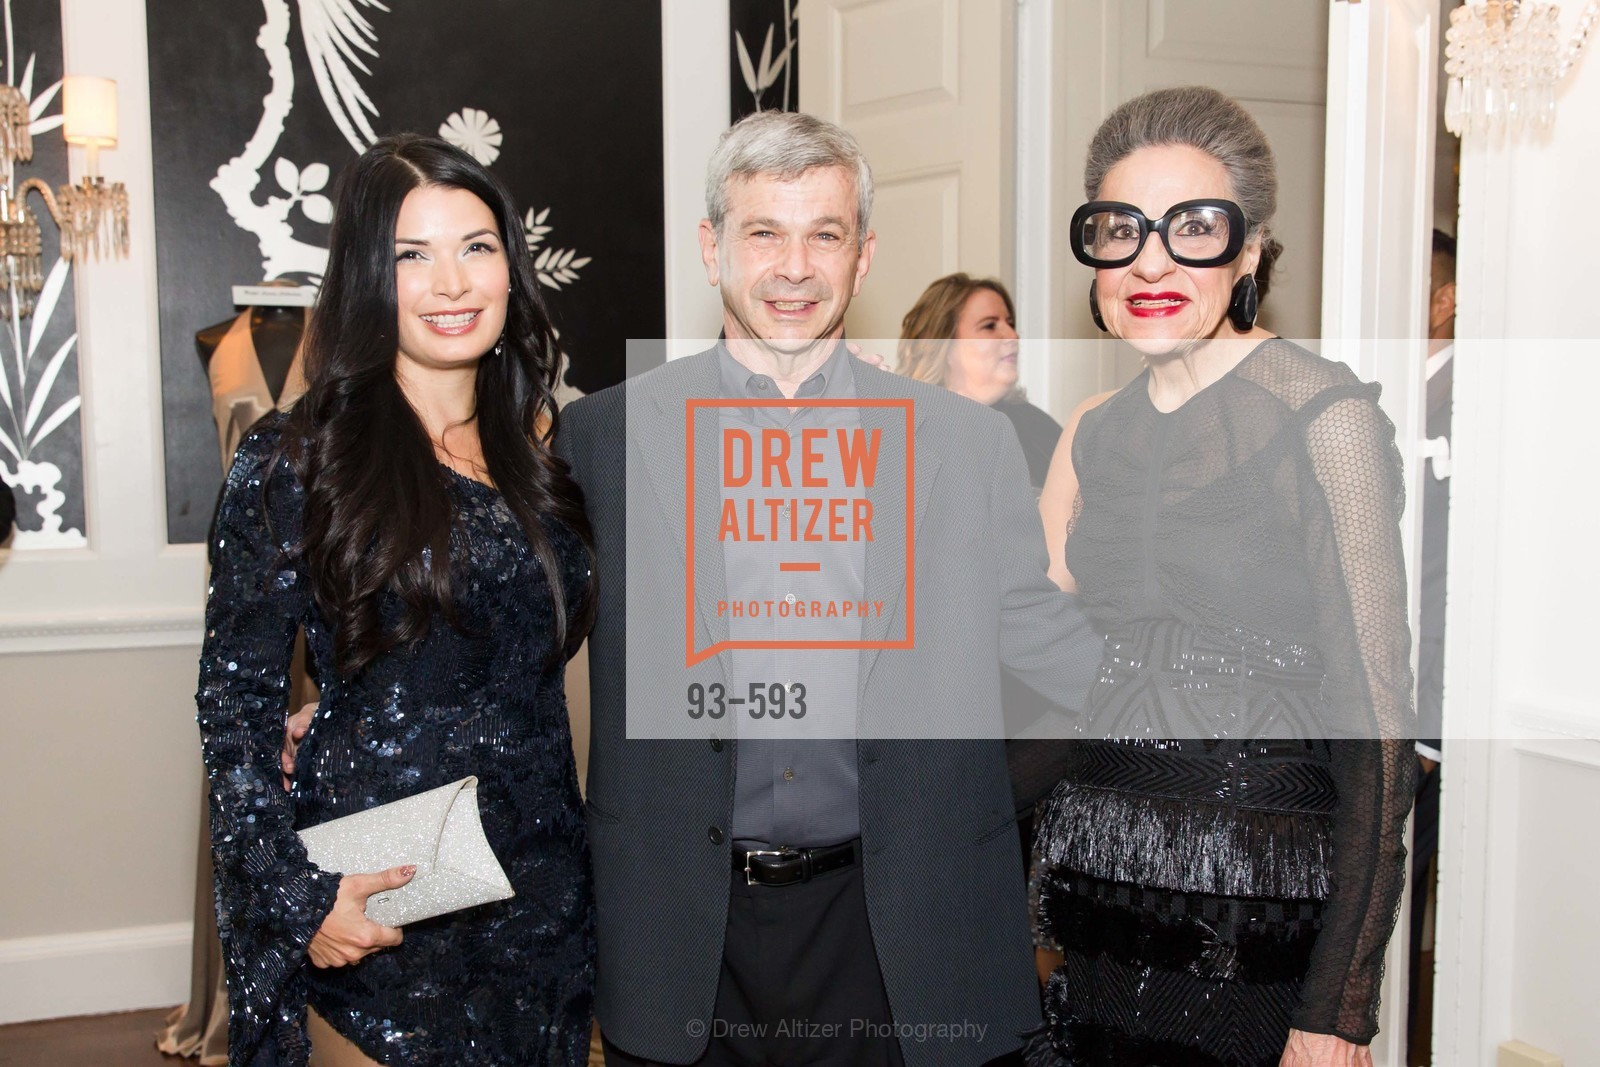 Skye Drynan, Richard Beleson, Joy Venturini Bianchi, COUTURE FOR A CAUSE, US, October 5th, 2014,Drew Altizer, Drew Altizer Photography, full-service agency, private events, San Francisco photographer, photographer california